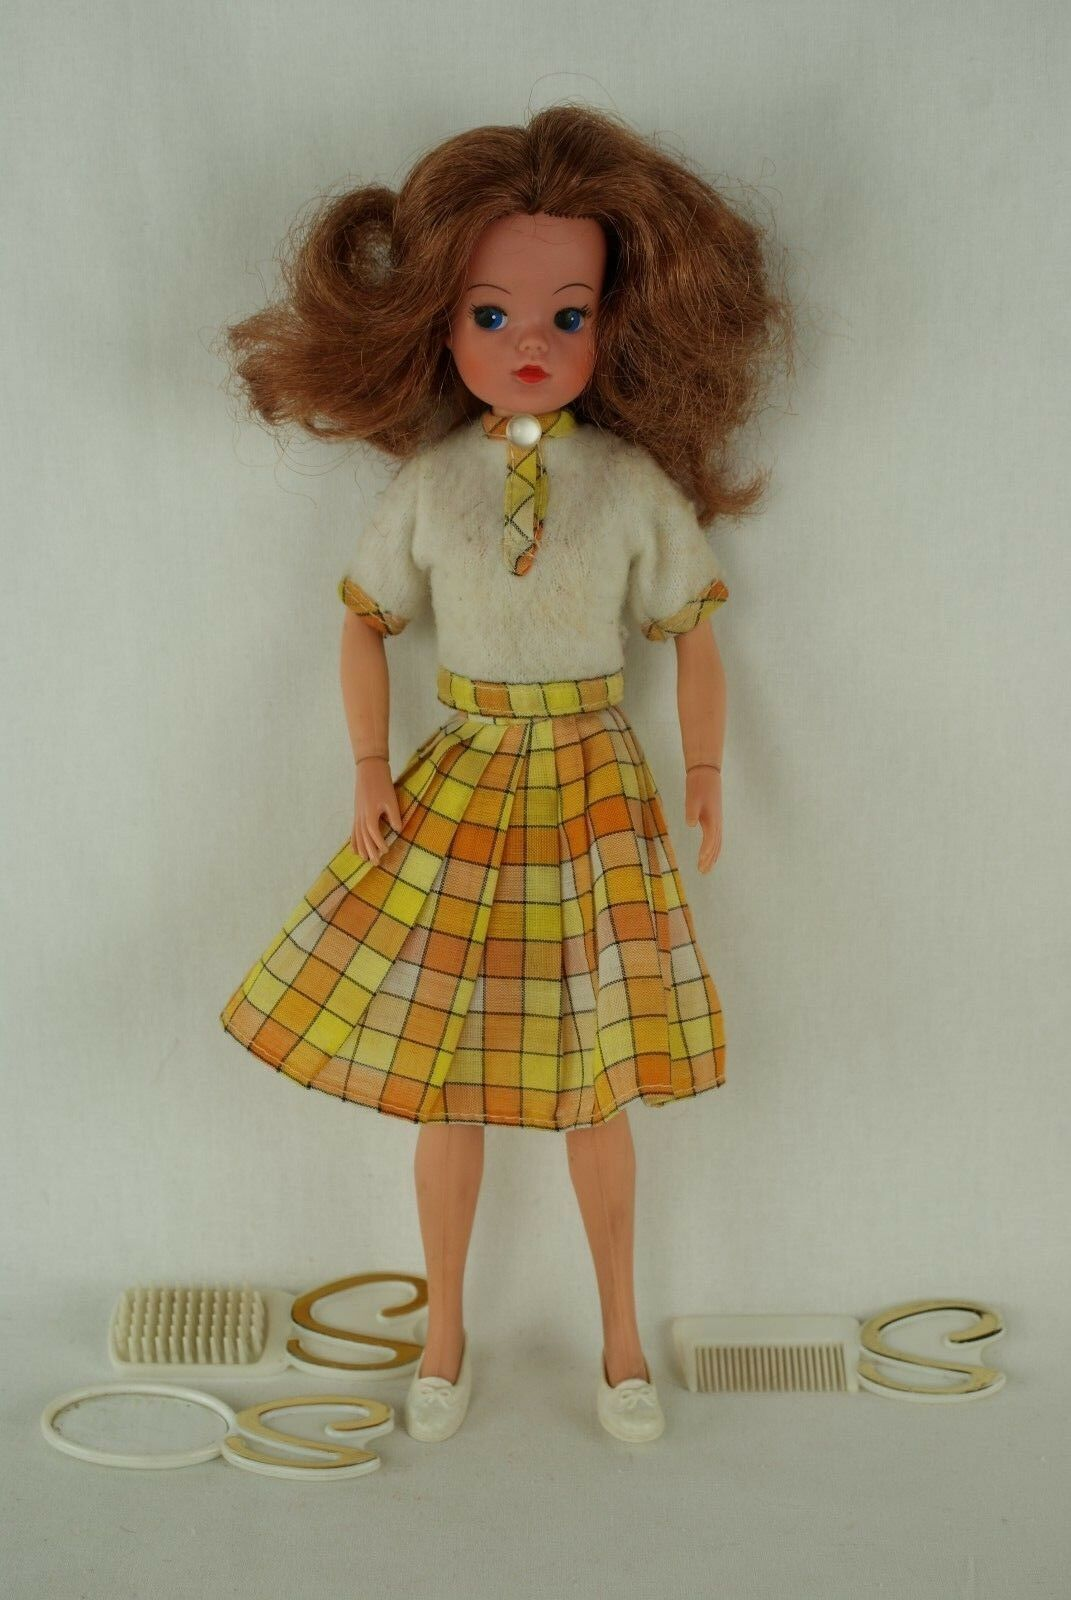 Pedigree SINDY SINDY SINDY auburn LOVELY LIVELY doll with outfit 1976 70's 89cc74